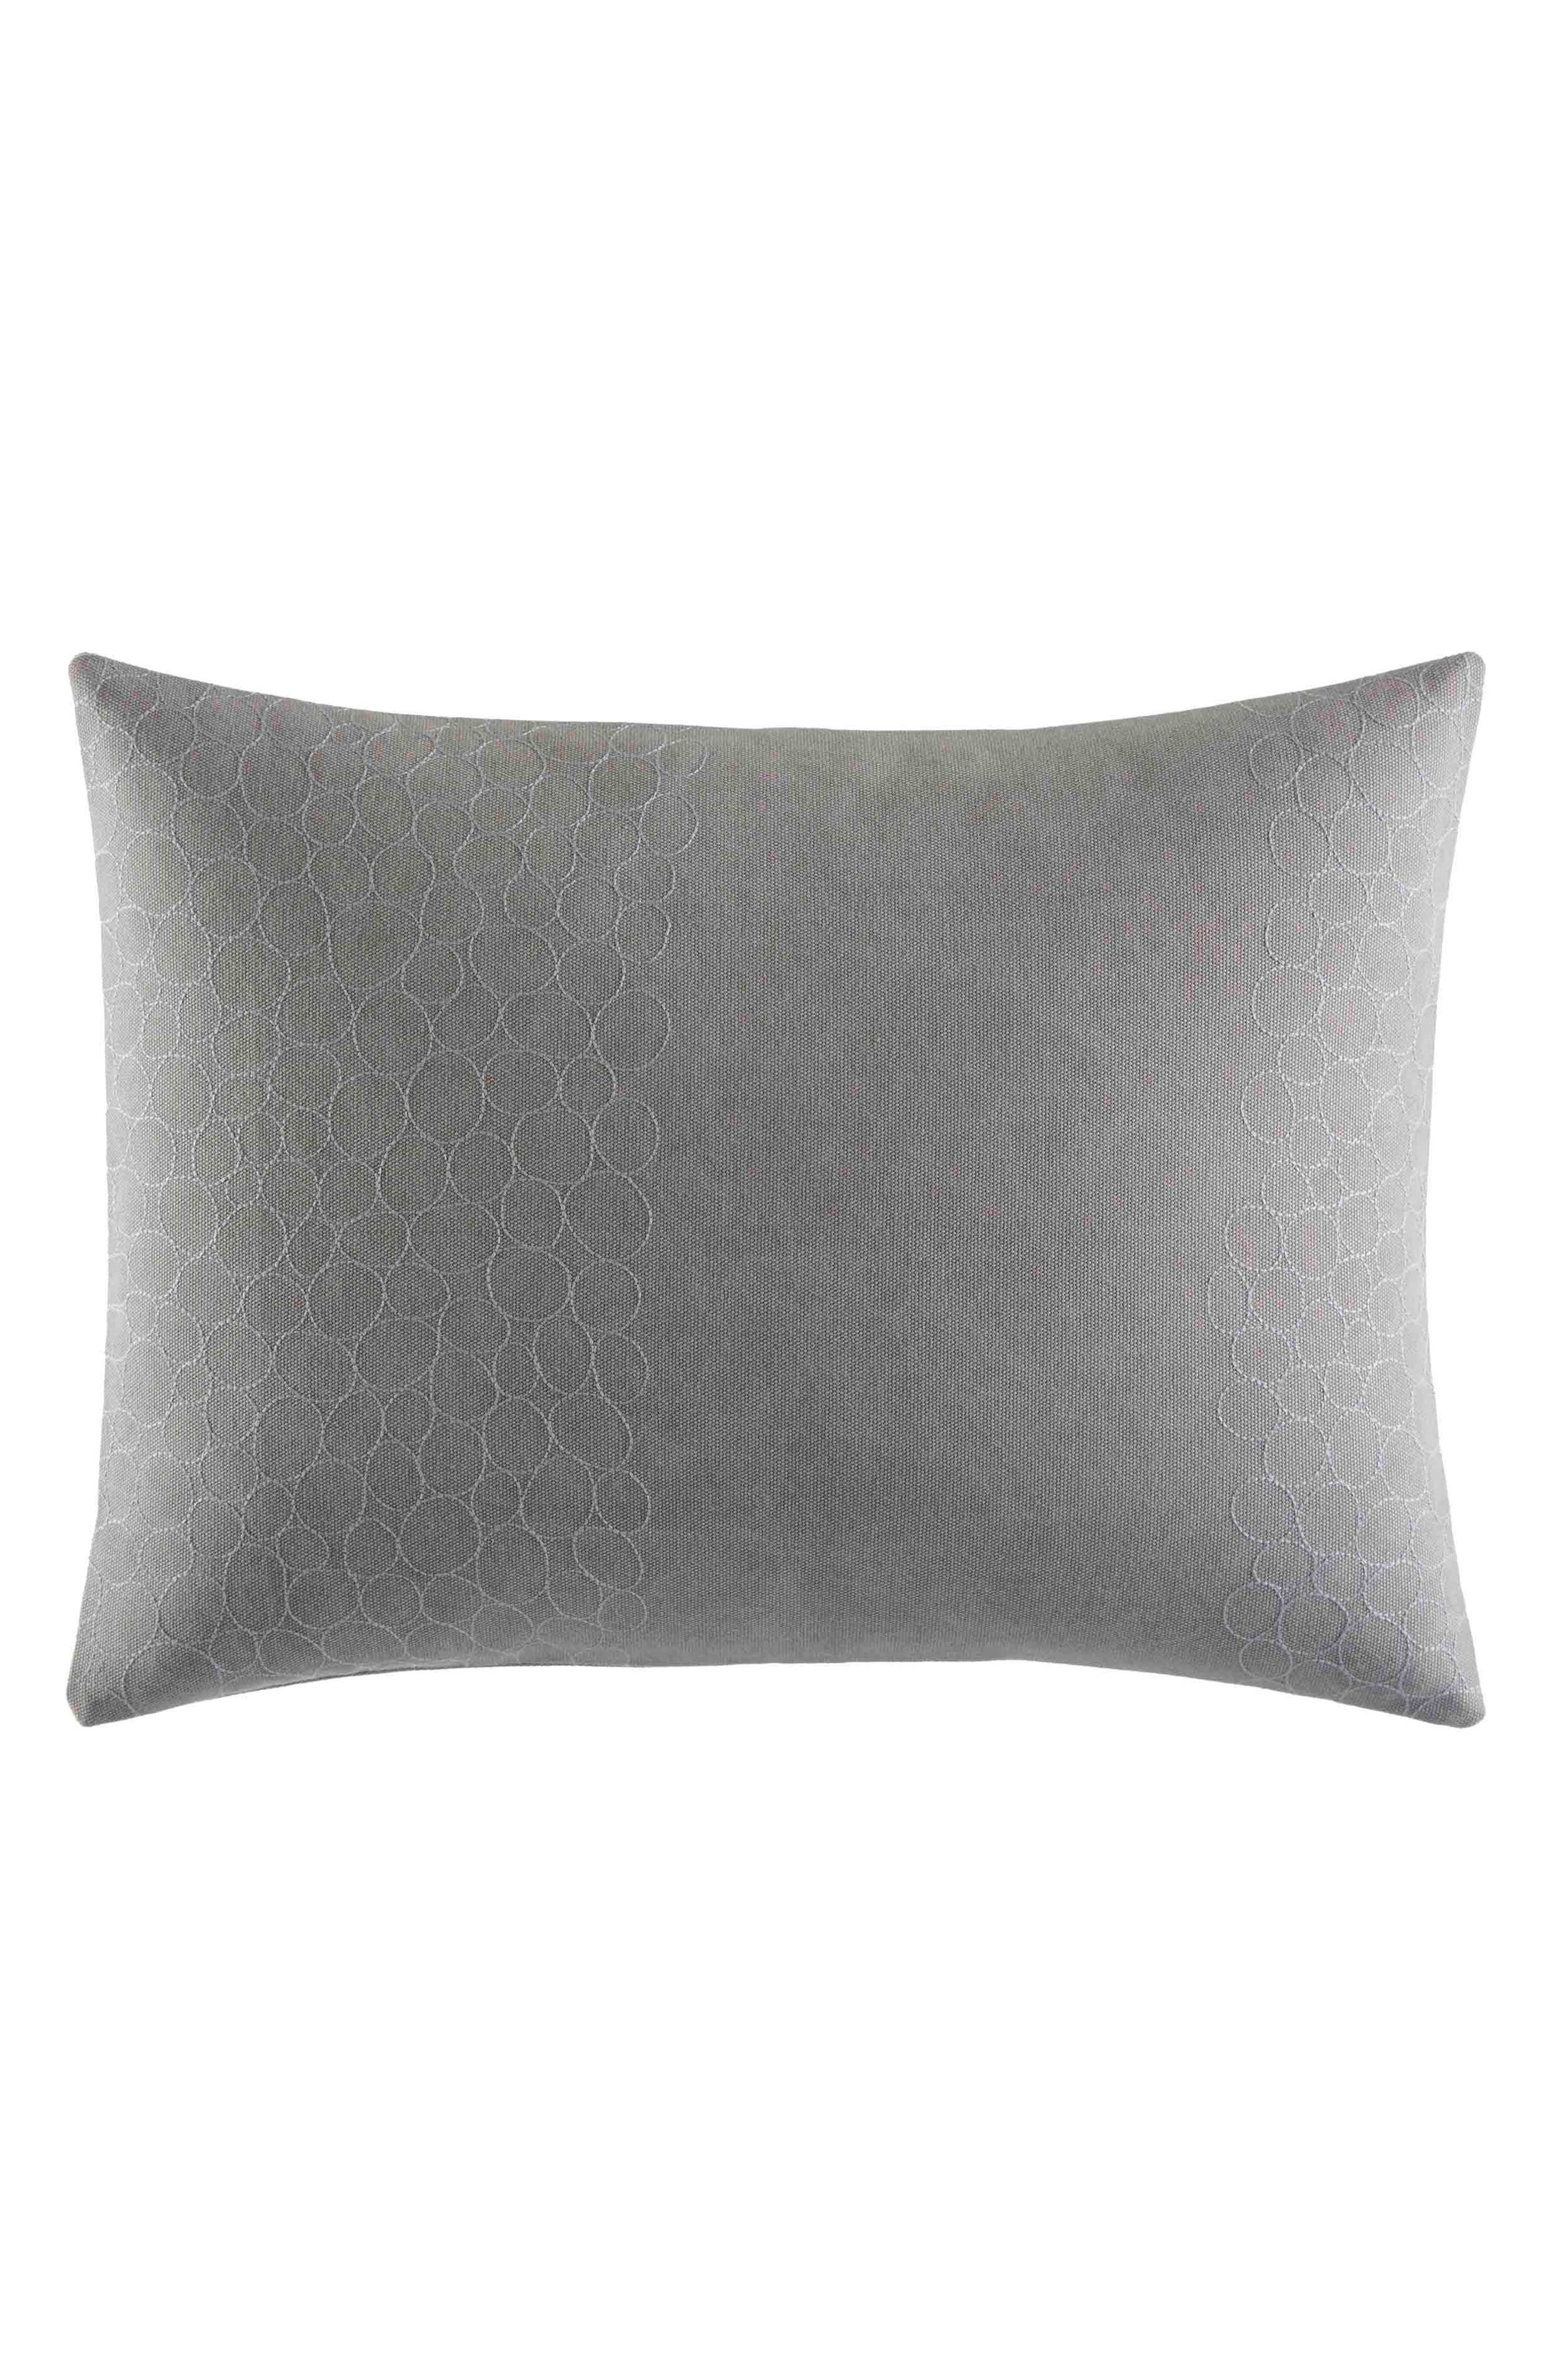 Transparent Leaves Breakfast Pillow,                             Main thumbnail 1, color,                             075